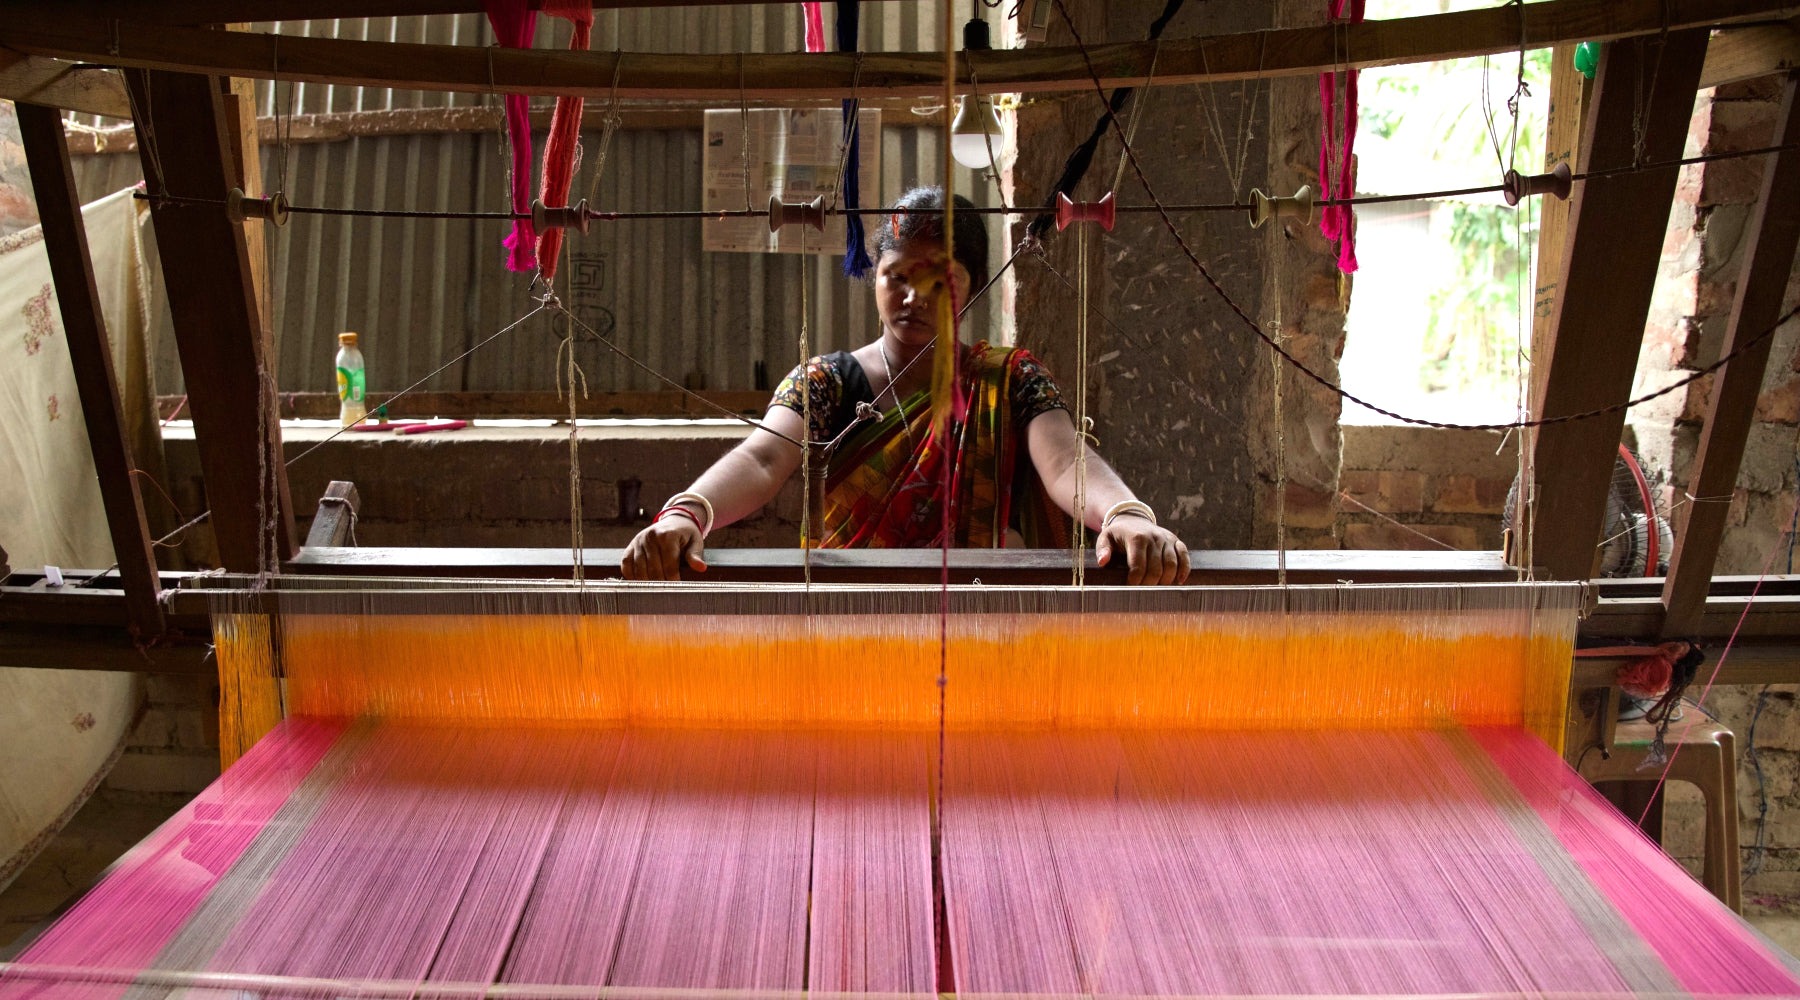 An artisan using a weaving machine to create a pink and gray fabric.